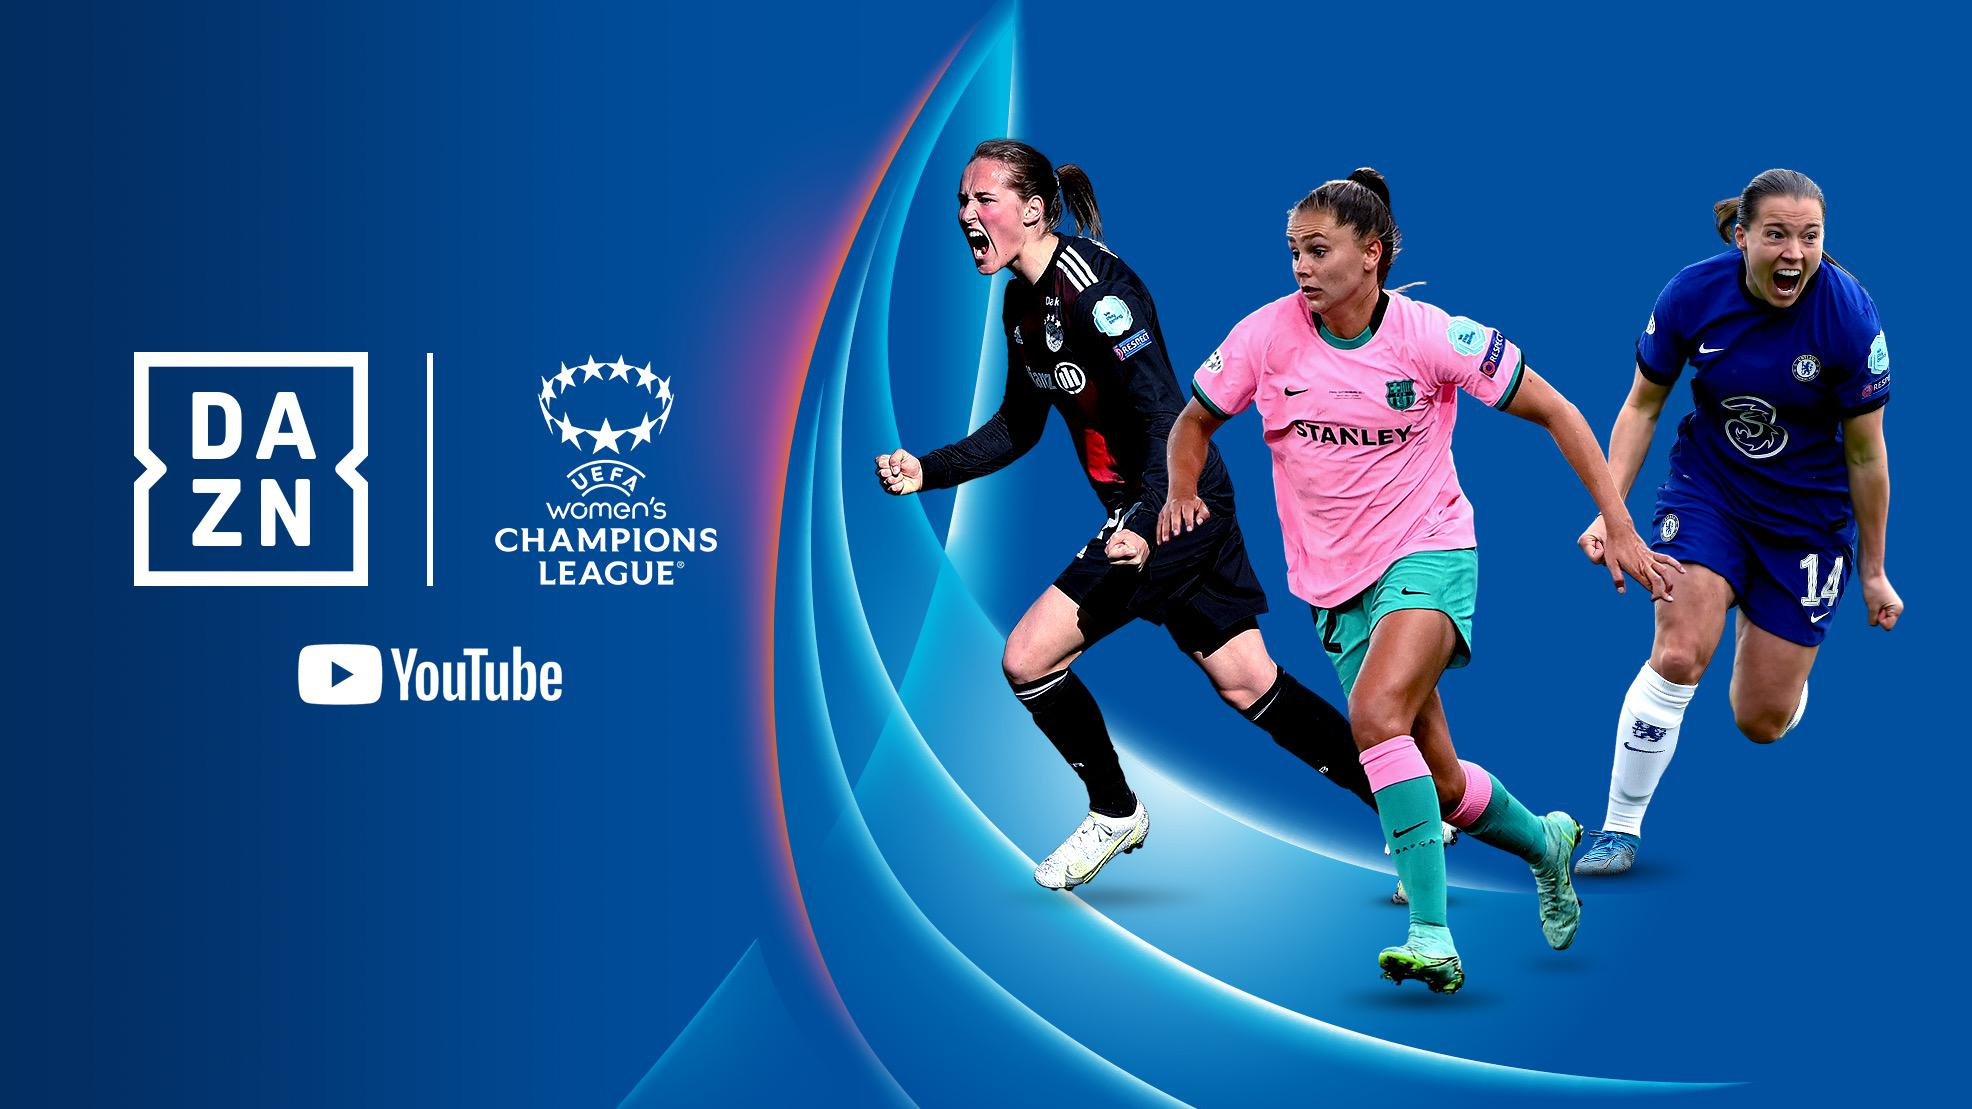 DAZN and YouTube to stream Women's Champions League